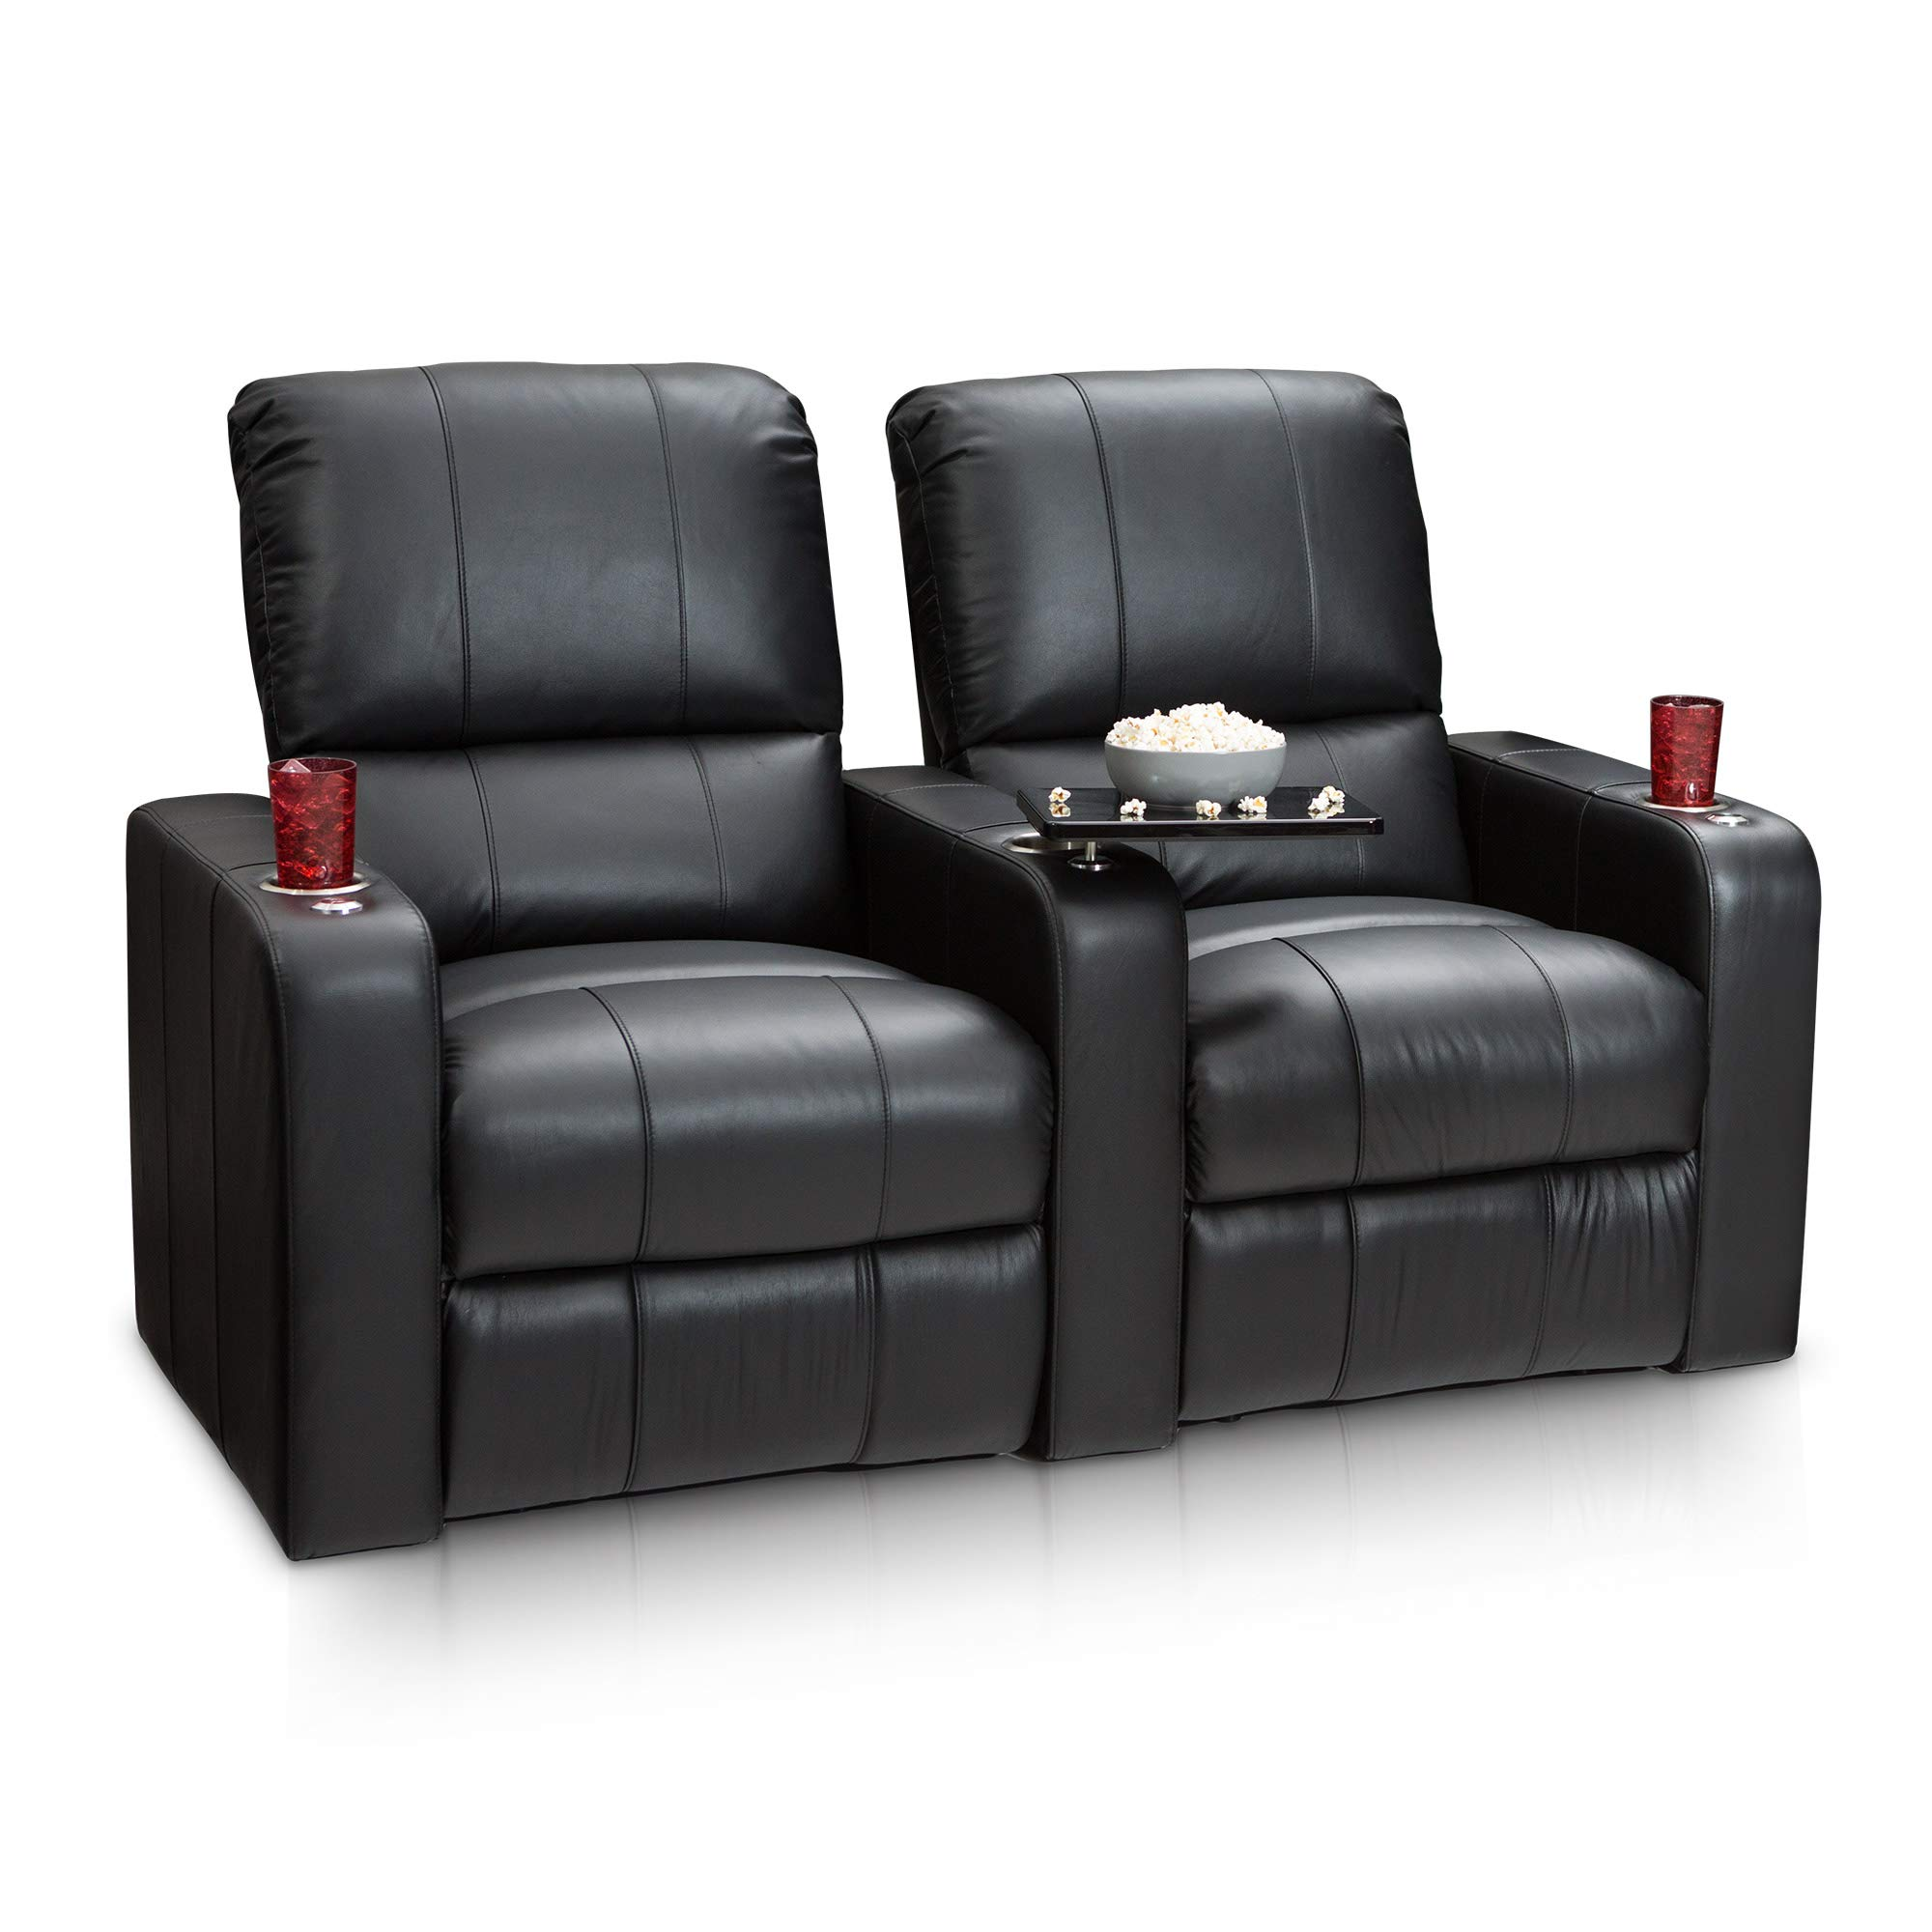 Seatcraft Millenia Home Theater Seating Manual Recline Leather (Row of 2, Black) by Seatcraft